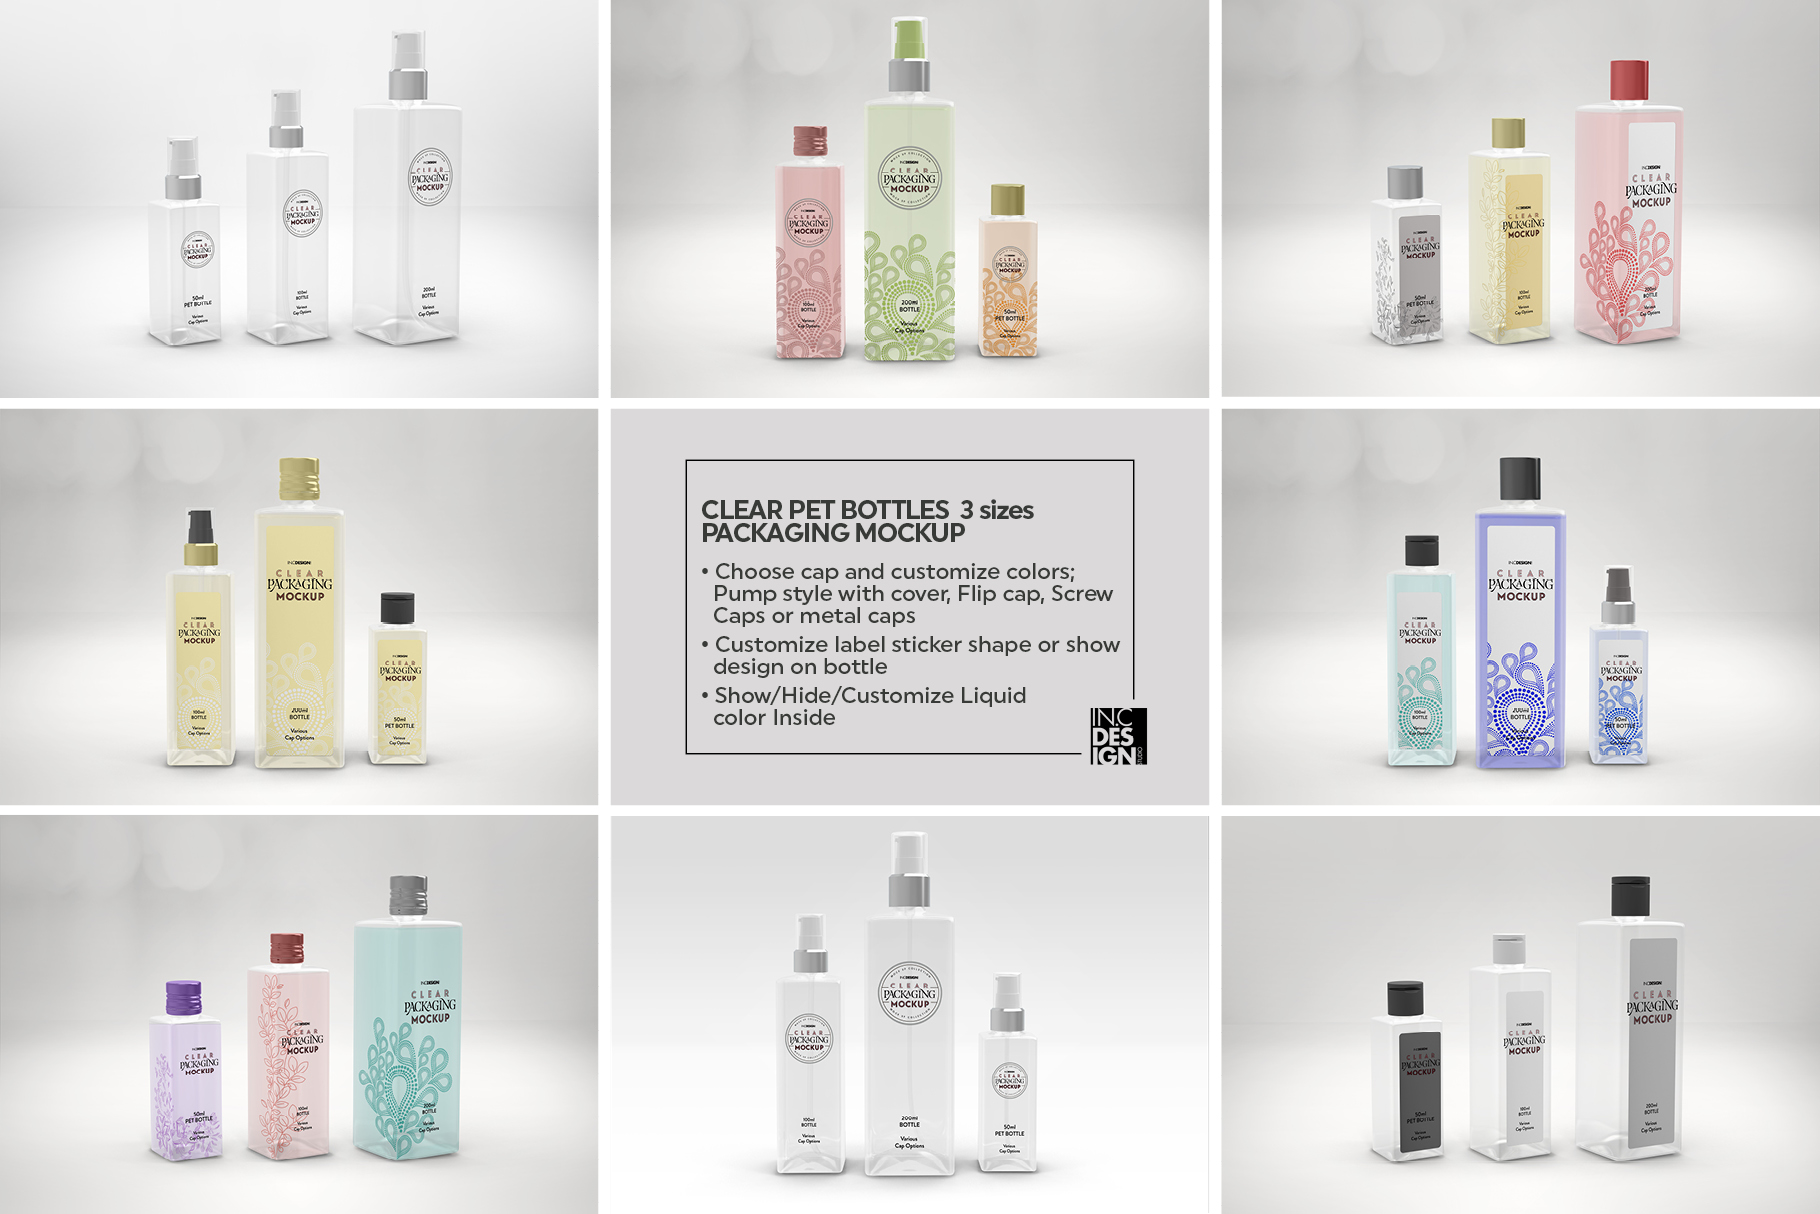 Clear Squared PET 3Bottles Packaging Mockup example image 3